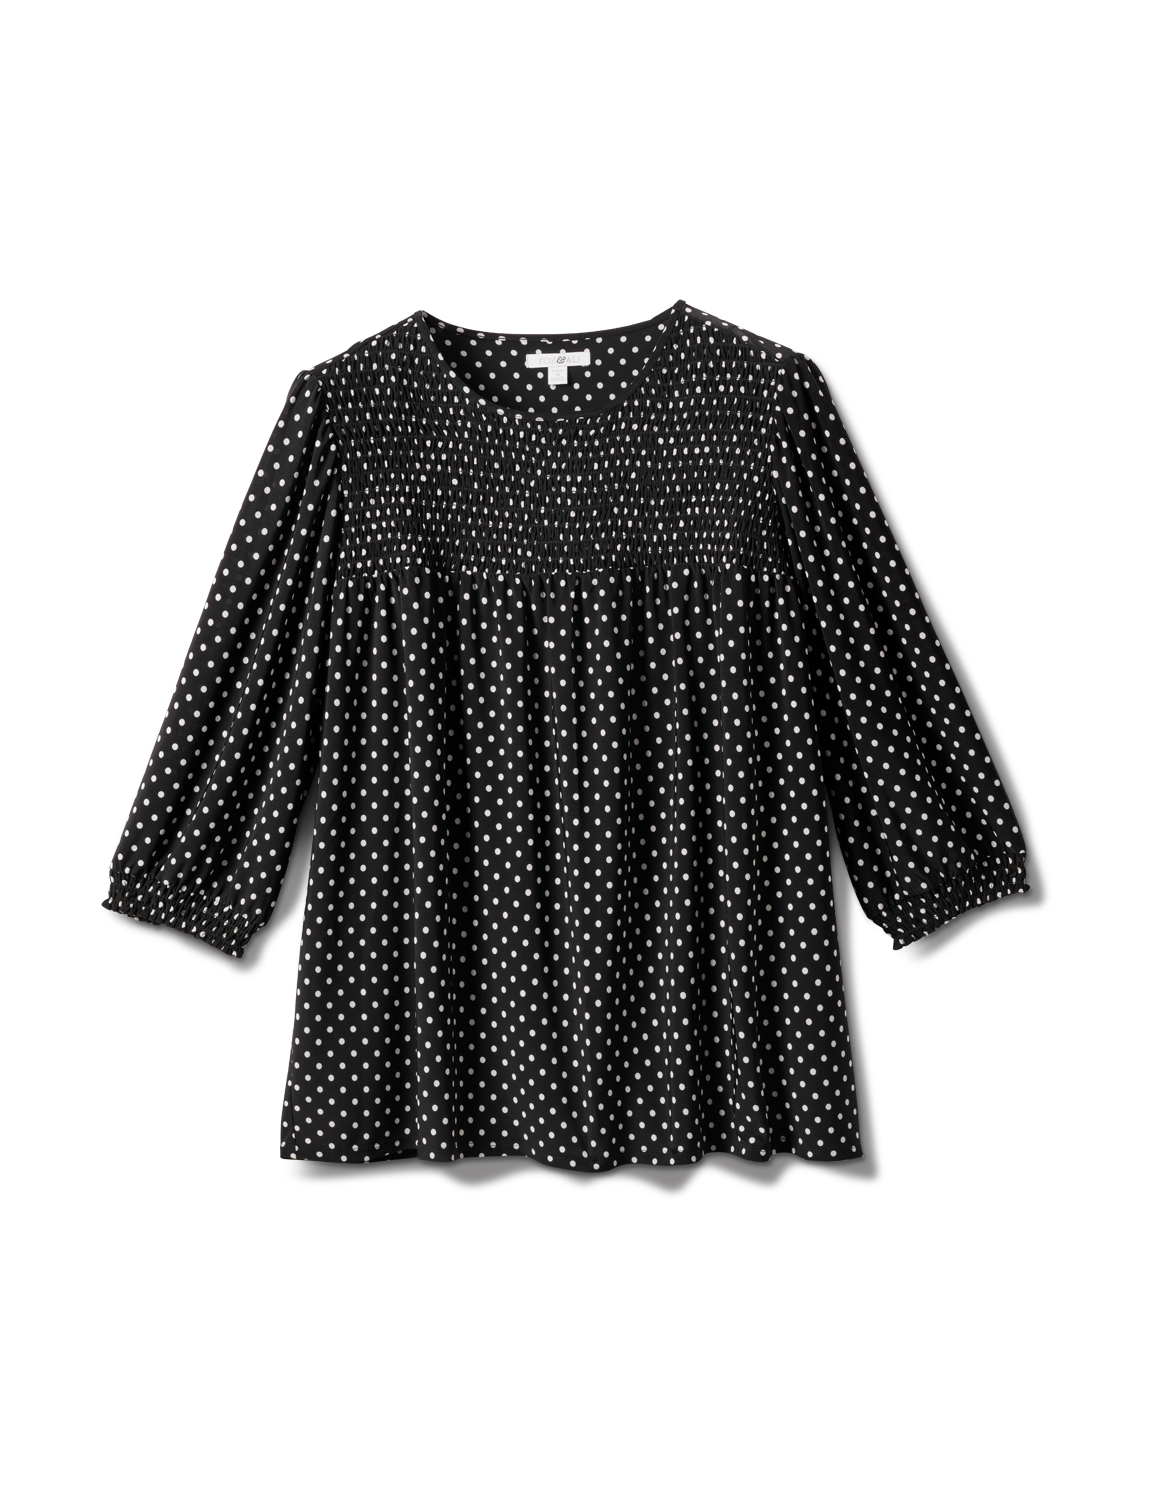 3/4 Sleeve Dot Smocked Knit Top - Plus -Black/White - Front